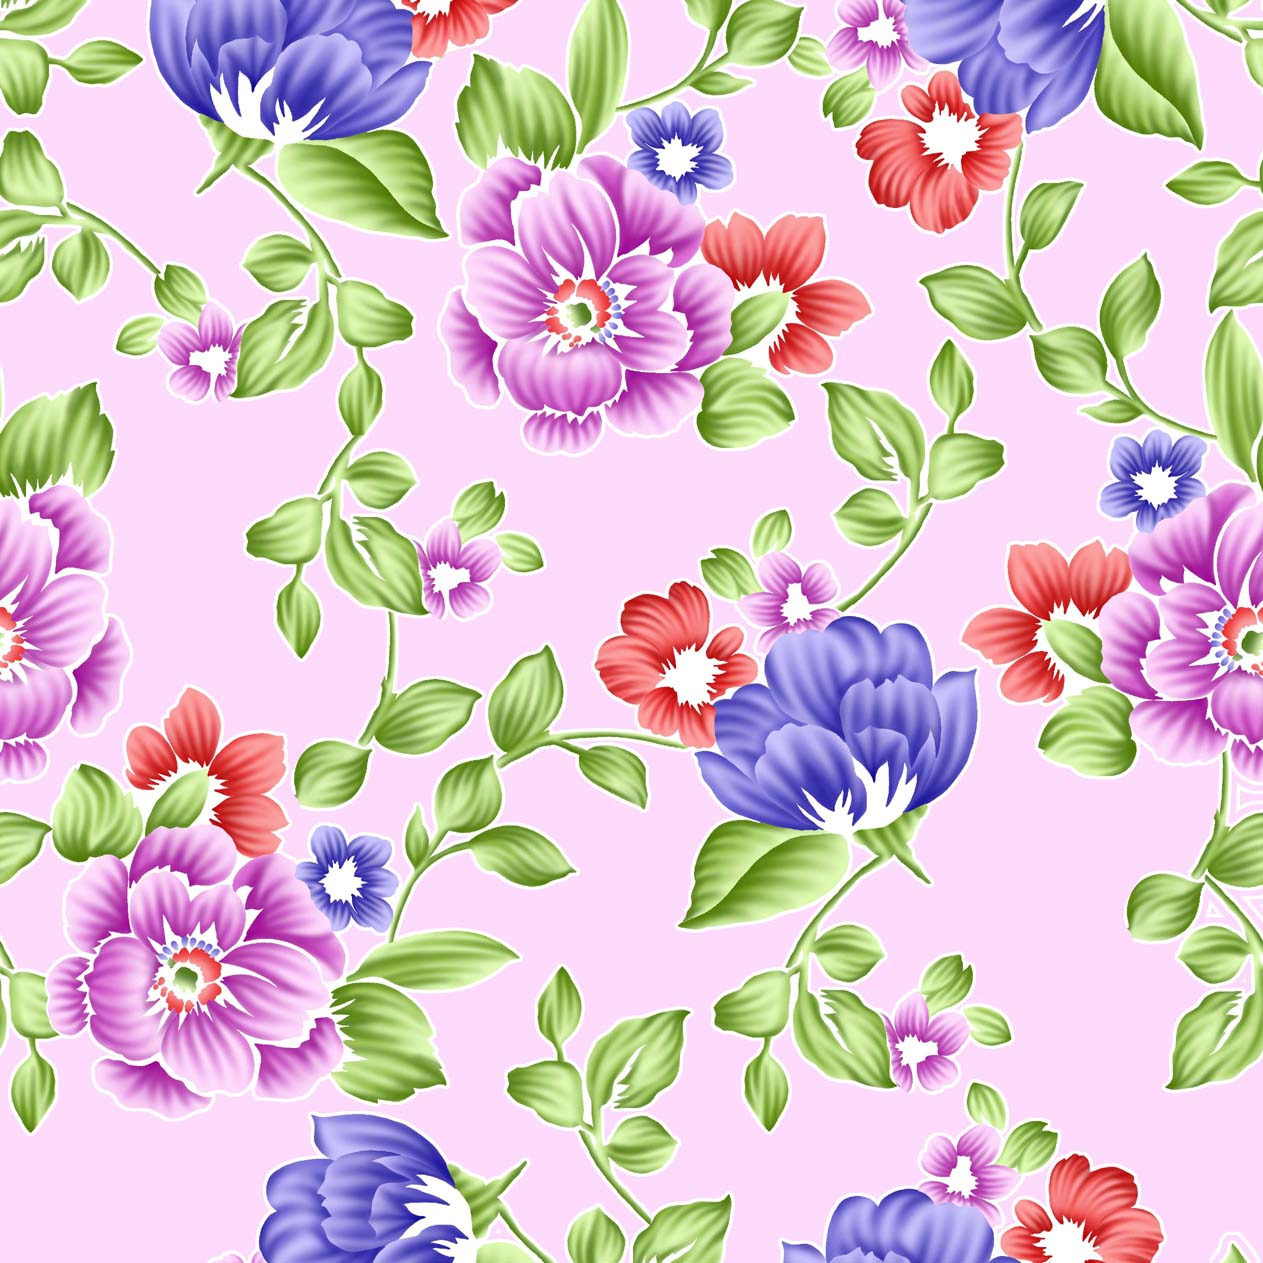 Fabric Upholstery Designs Print And Patterns Textile Design